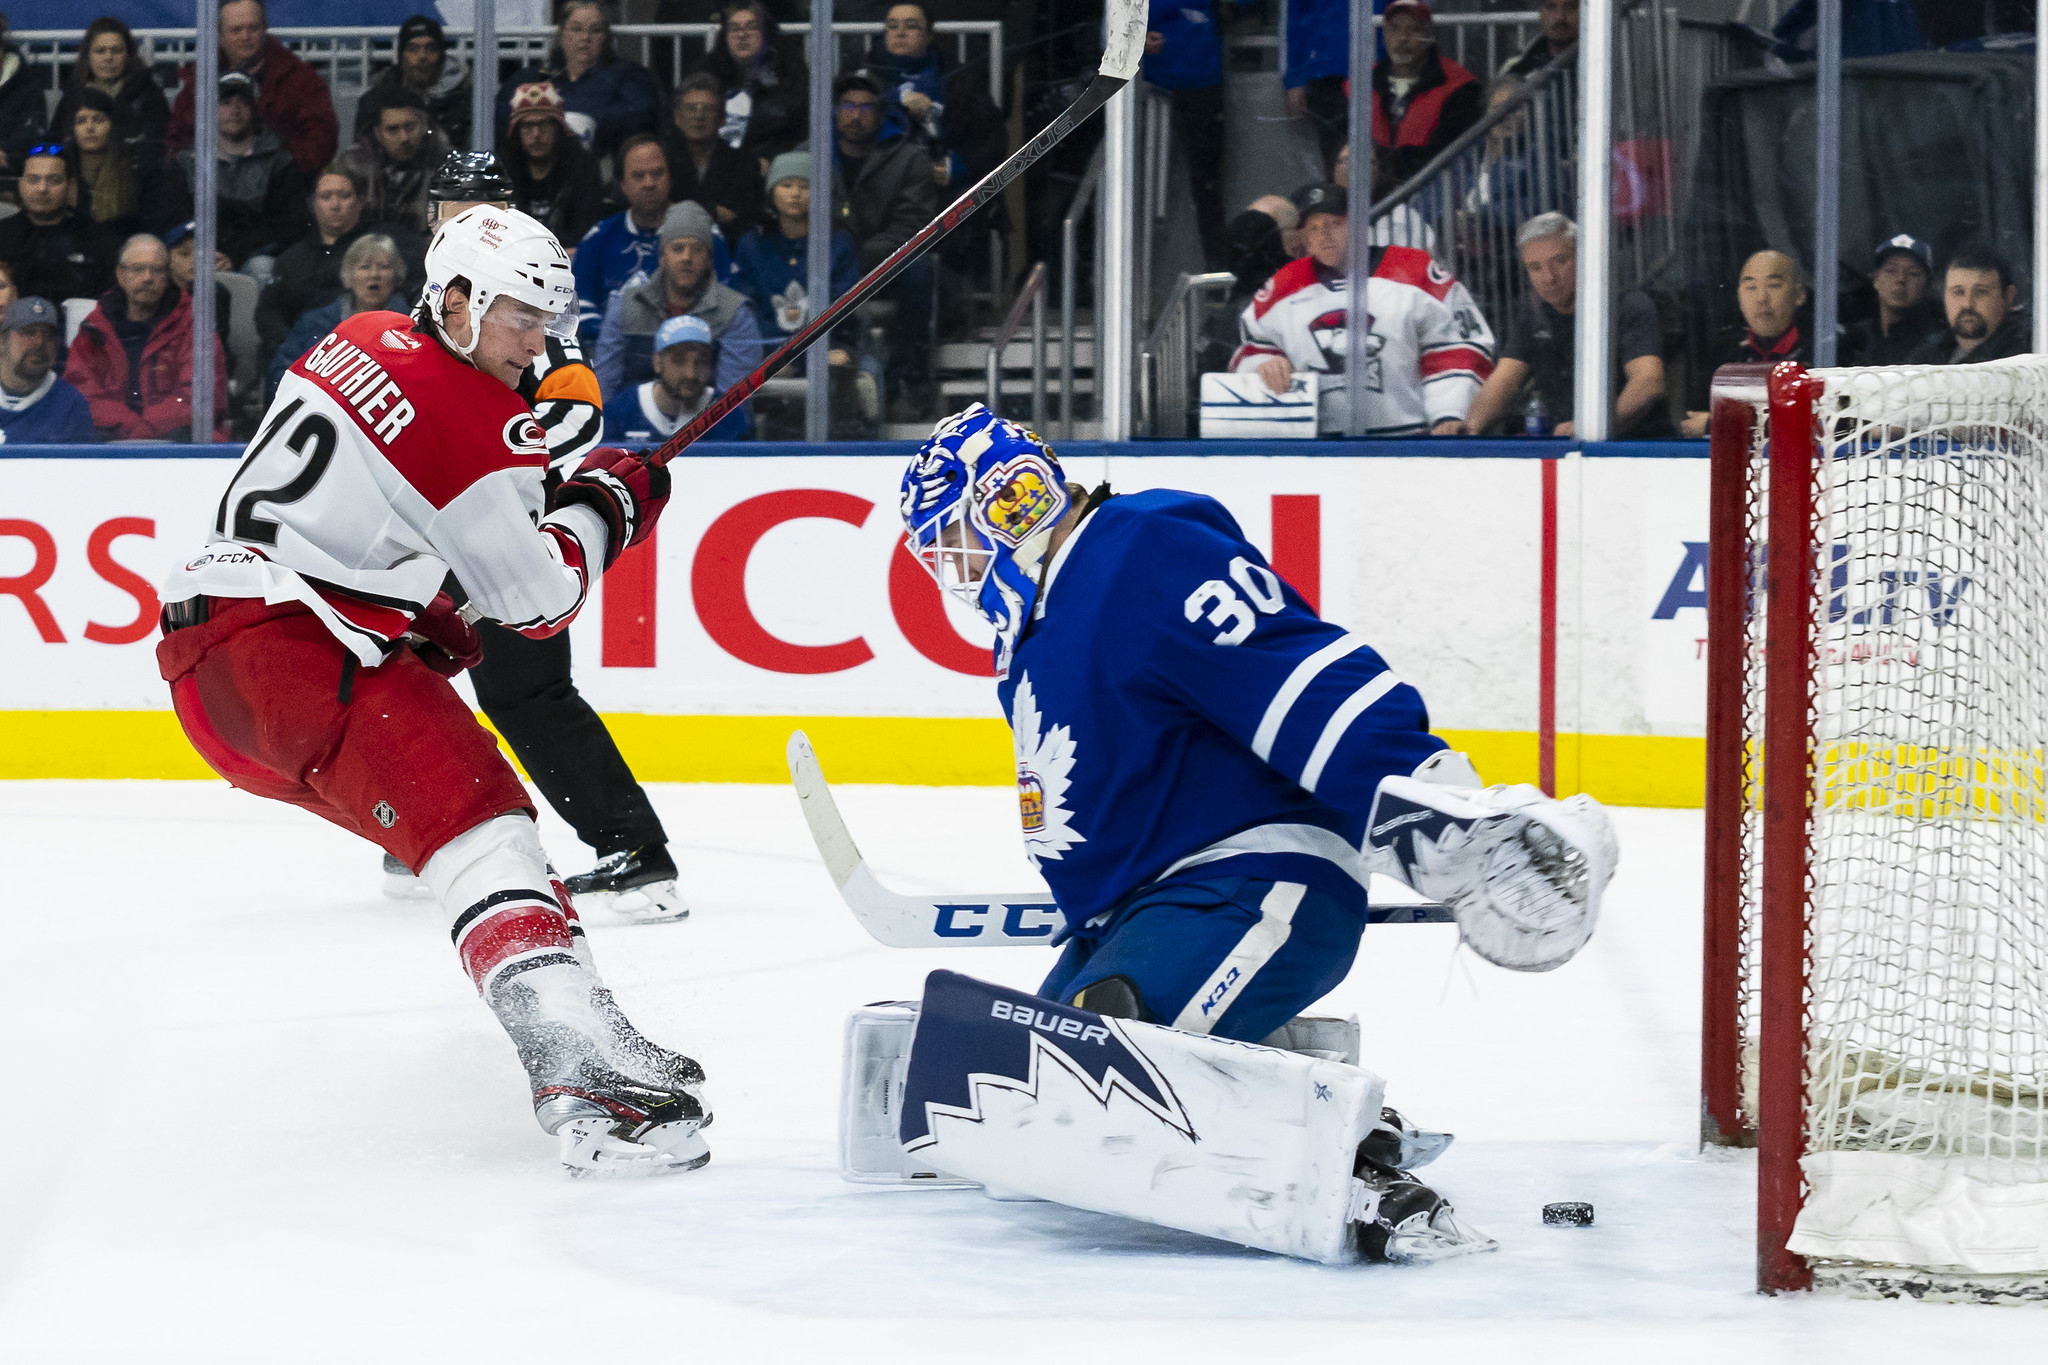 Toronto Marlies vs. Charlotte Checkers